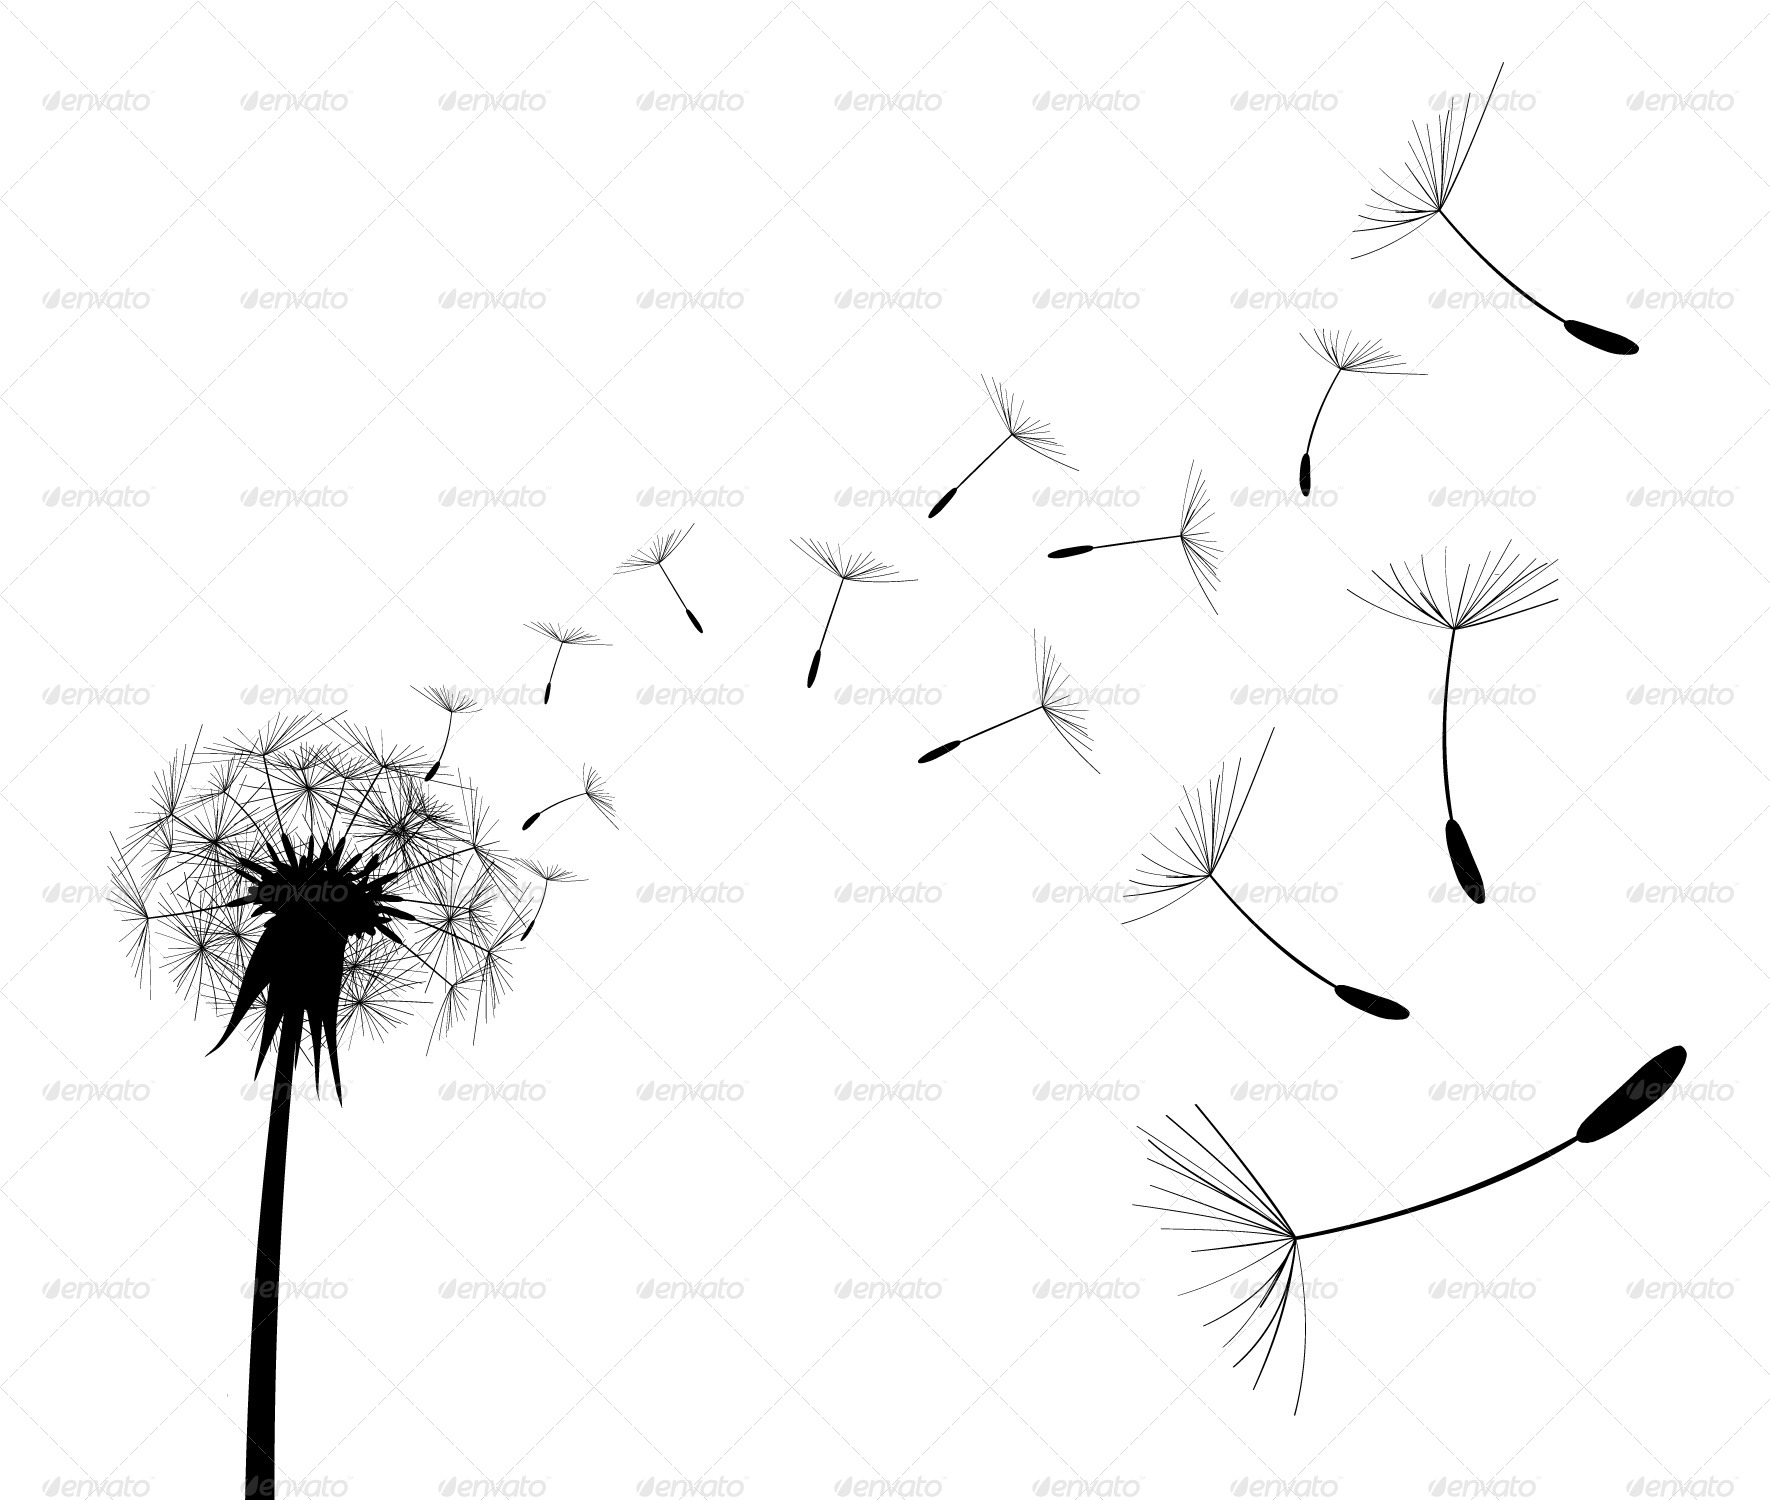 dandelions blowing the wind coloring pages | Blowing Dandelion Coloring Pages Coloring Coloring Pages